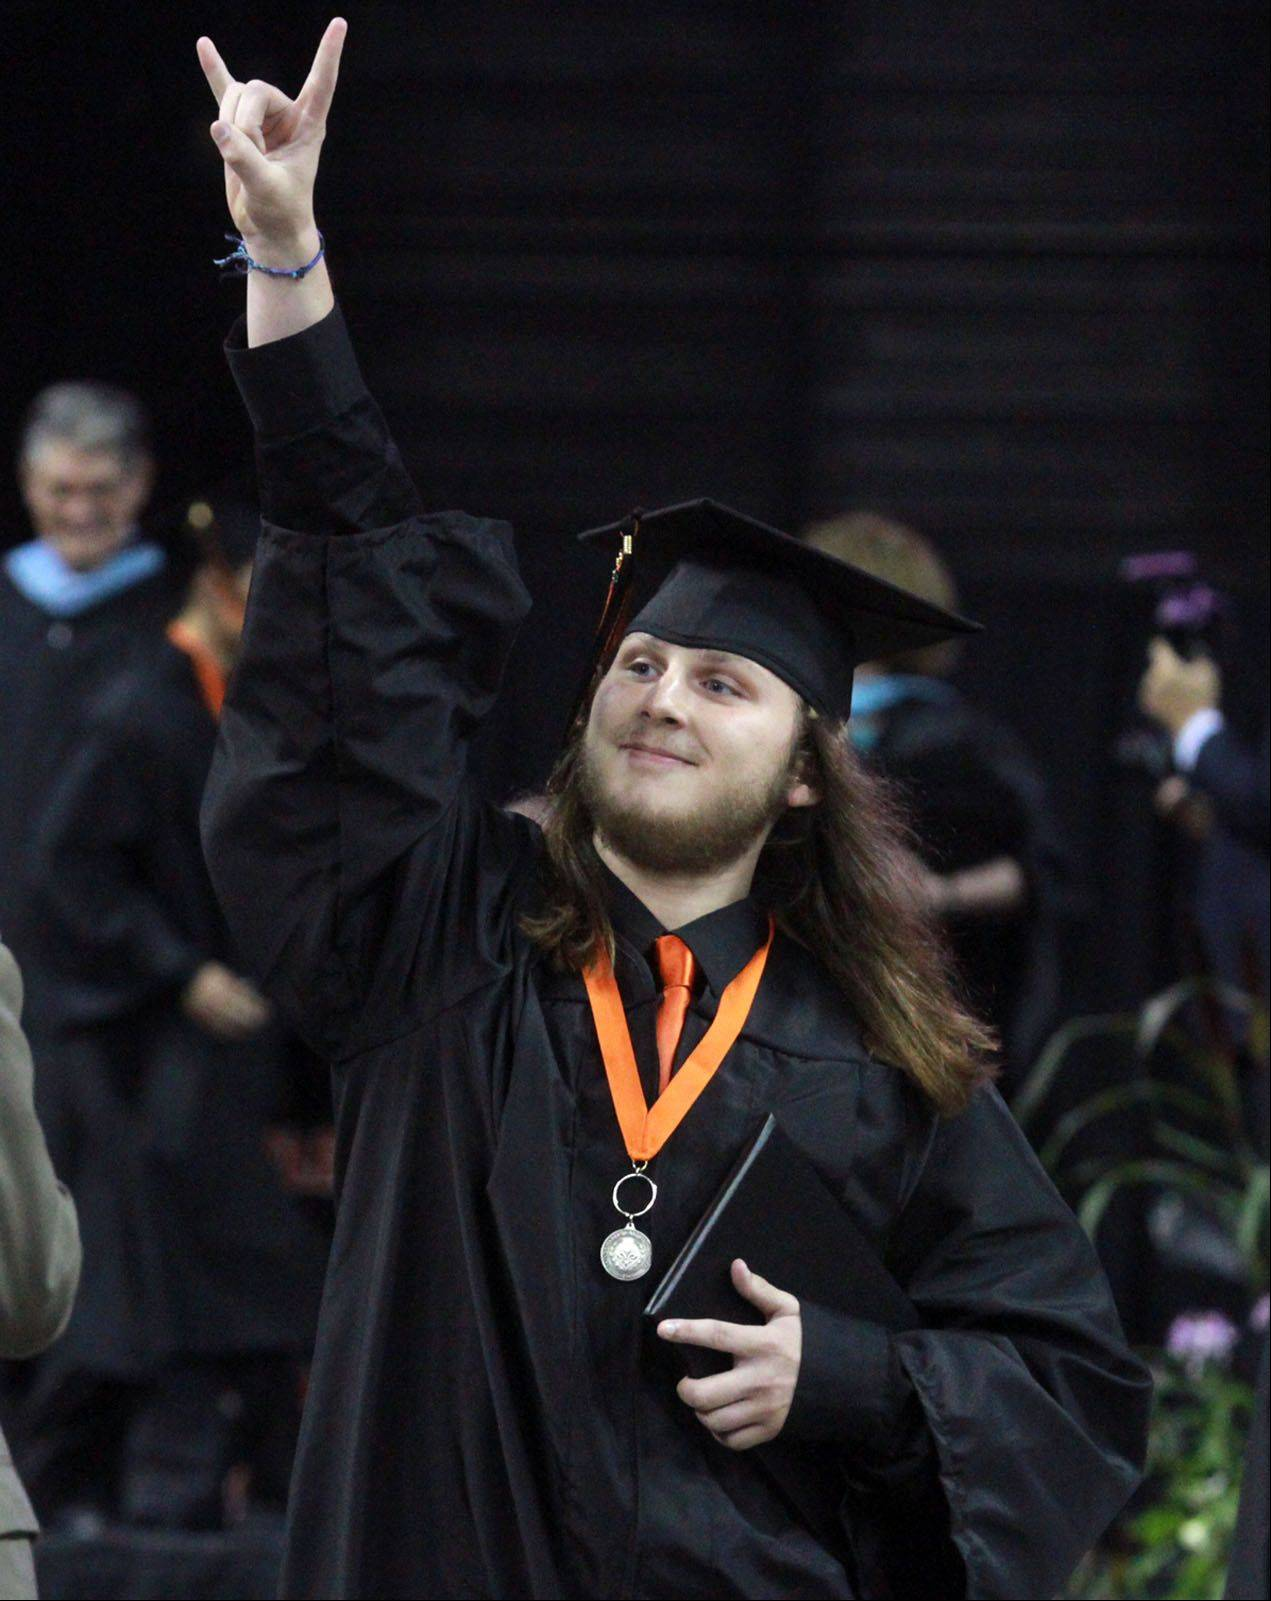 Zachary Utley celebrates getting his diploma as he walks offstage during St. Charles East High School commencement ceremony at the Sears Centre in Hoffman Estates on Sunday, May 26, 2013.